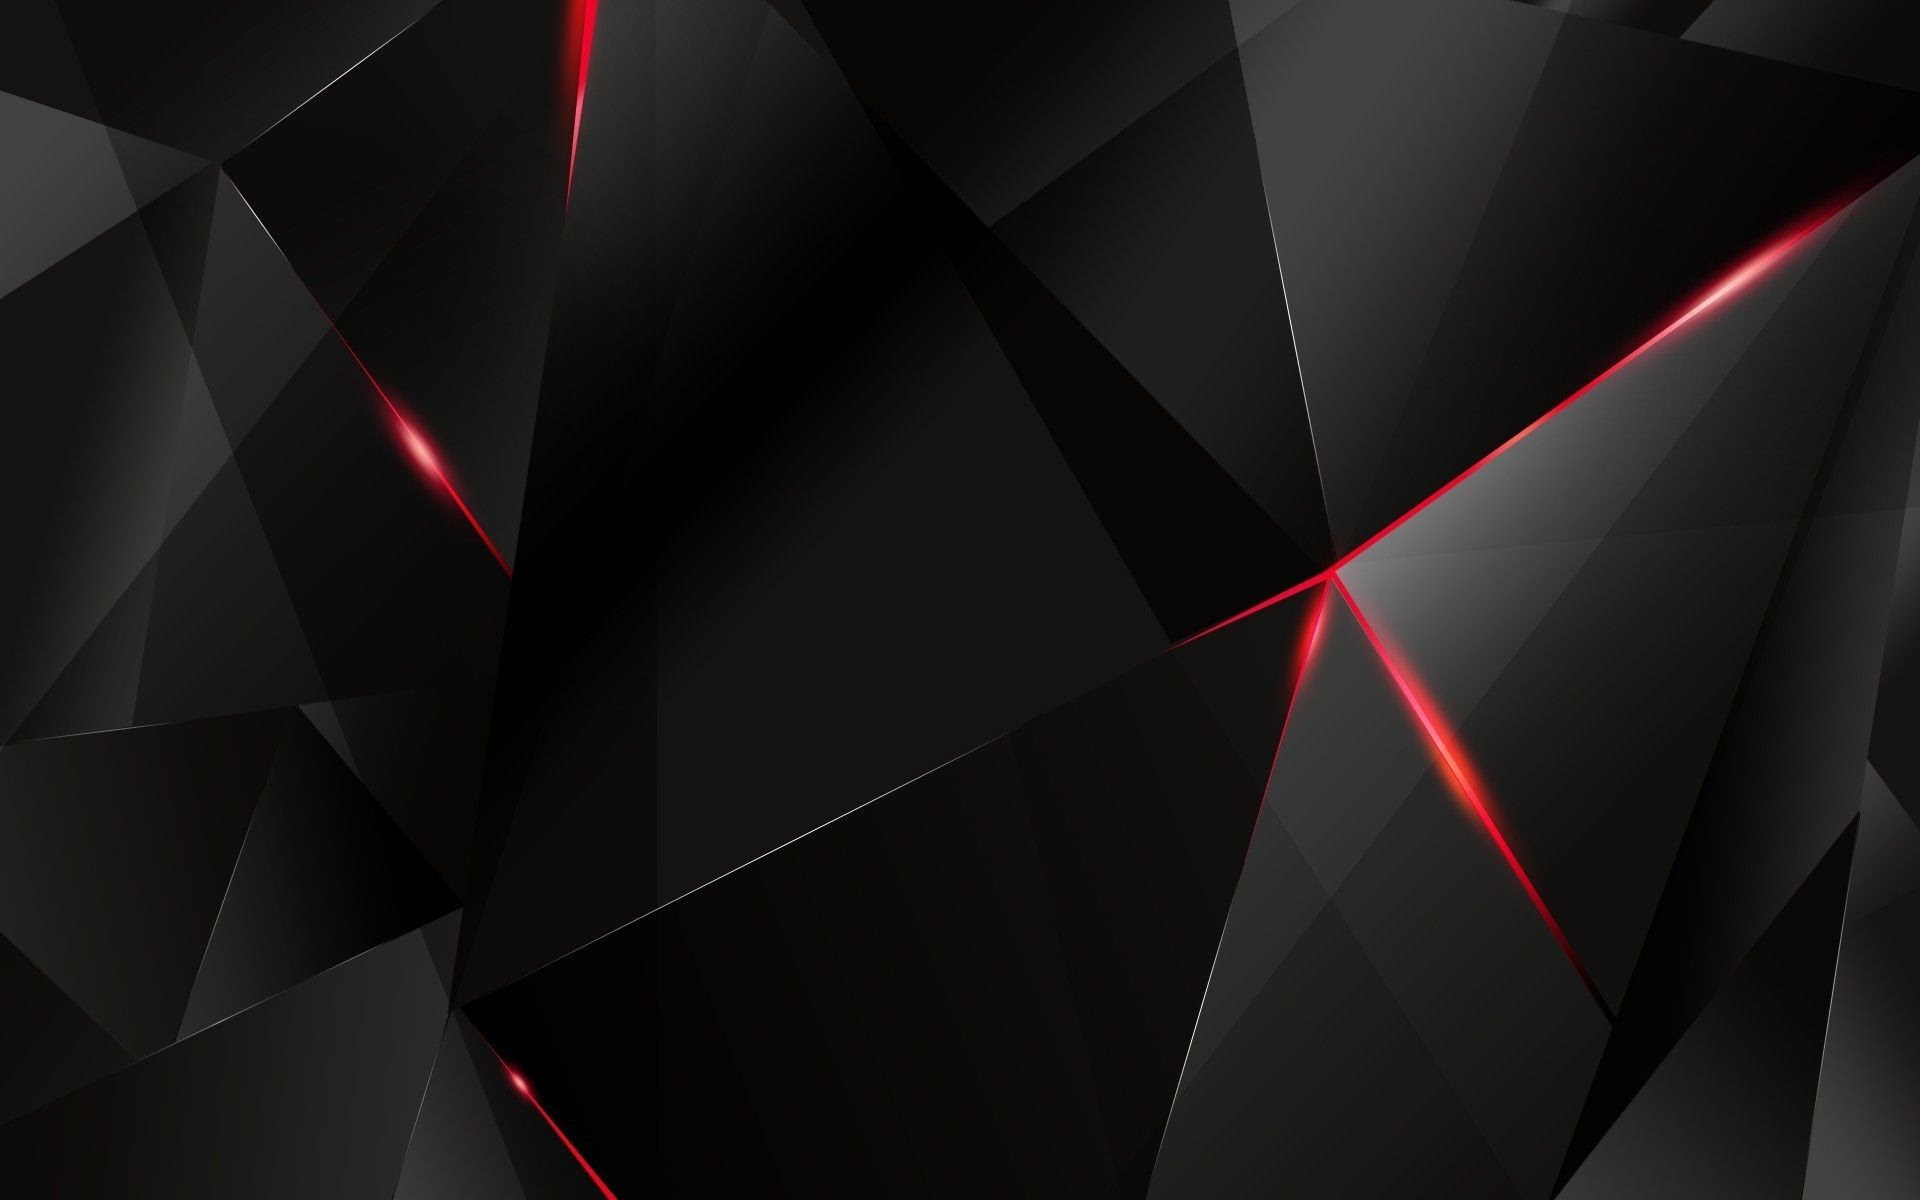 Cool Red and Black Wallpapers (63+ images)